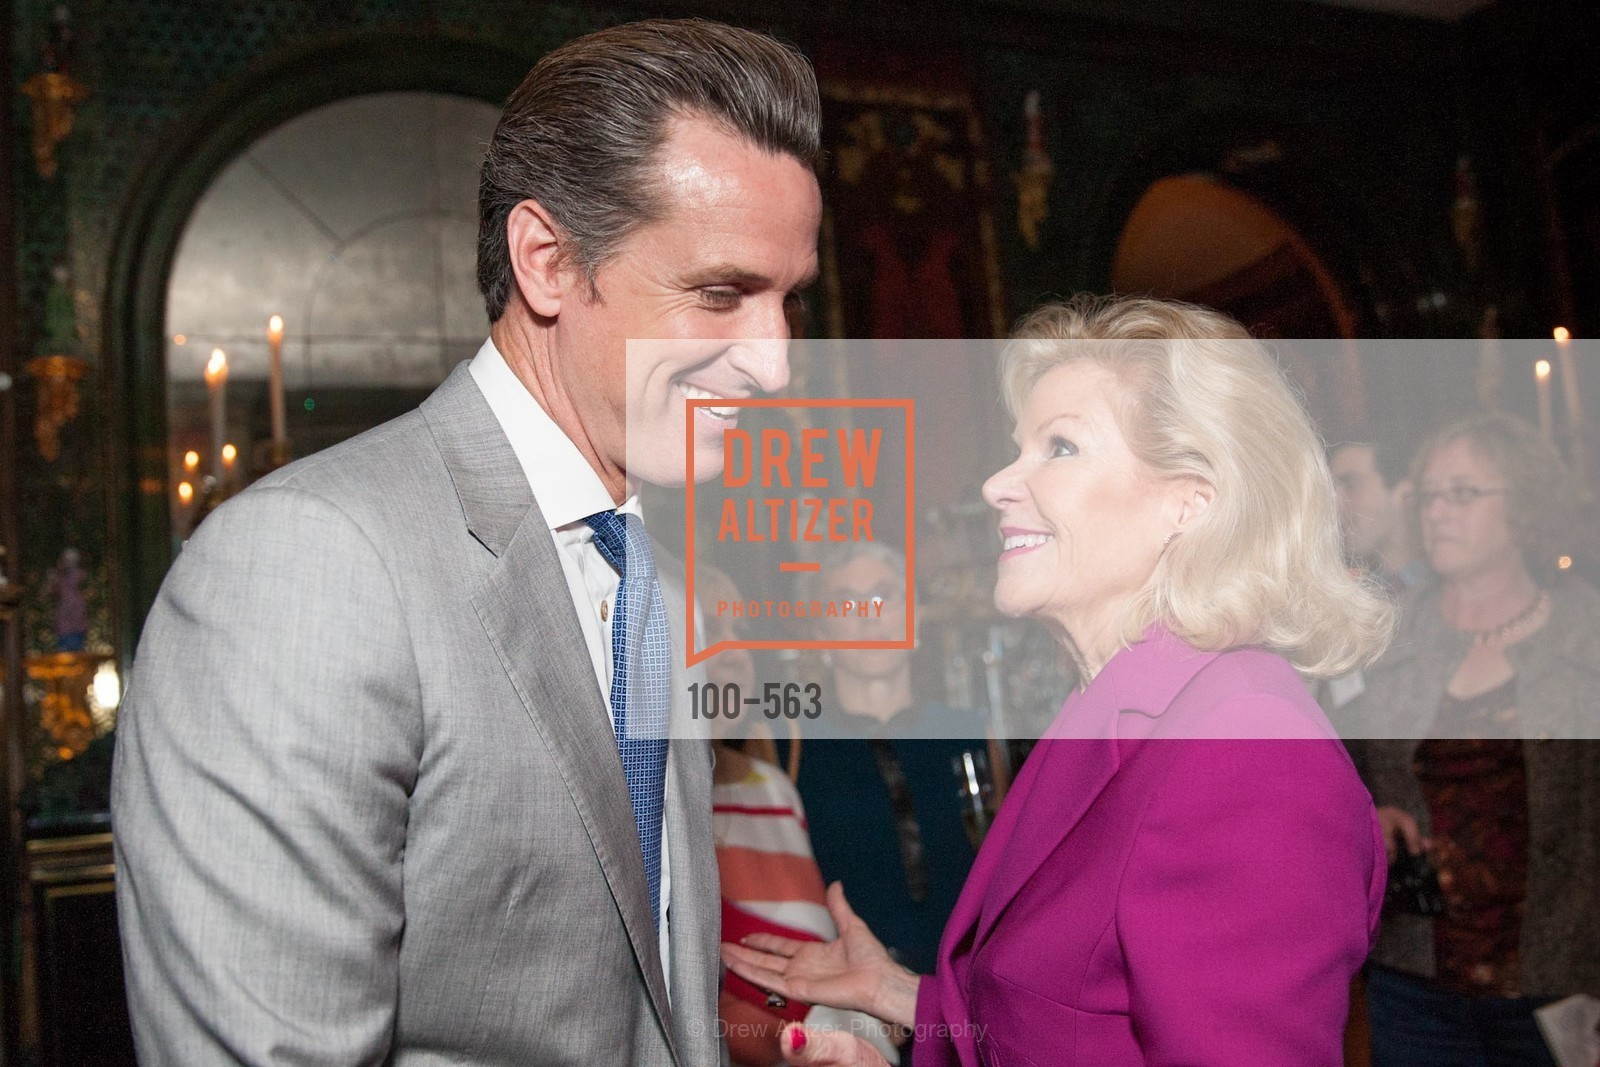 Honorable Gavin Newsom, Dede Wilsey, HAMILTON FAMILY CENTER Top Donor Cocktail Reception, US, September 10th, 2014,Drew Altizer, Drew Altizer Photography, full-service event agency, private events, San Francisco photographer, photographer California